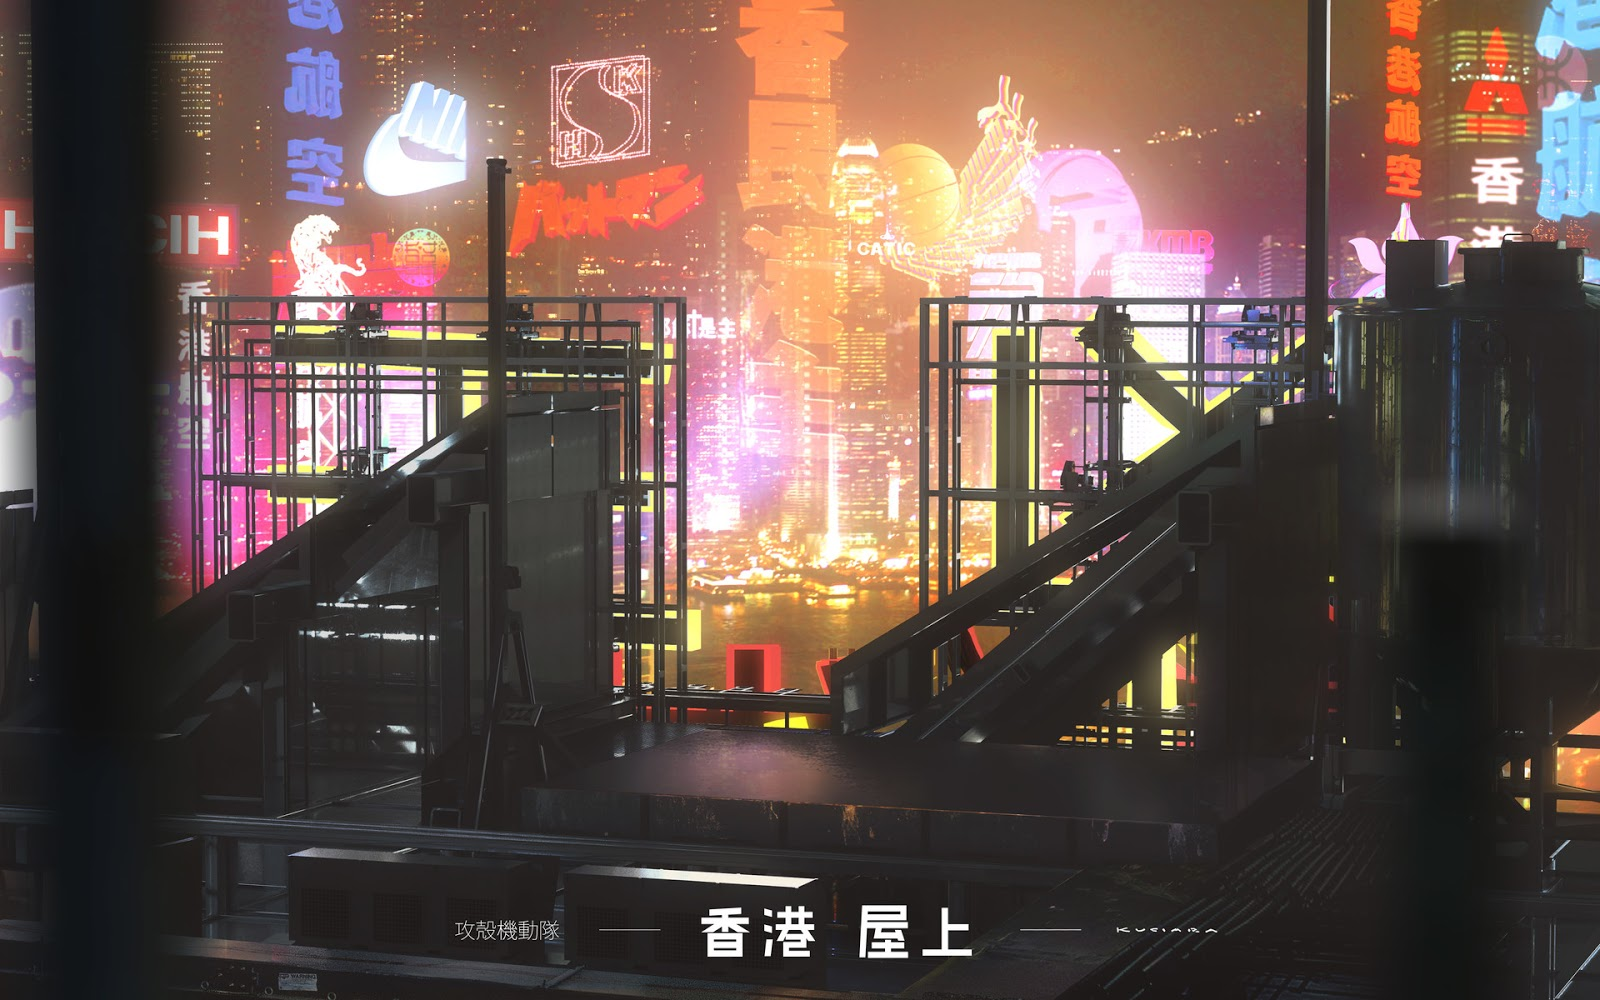 Ghost In The Shell Environments And People Computer Graphics Daily News